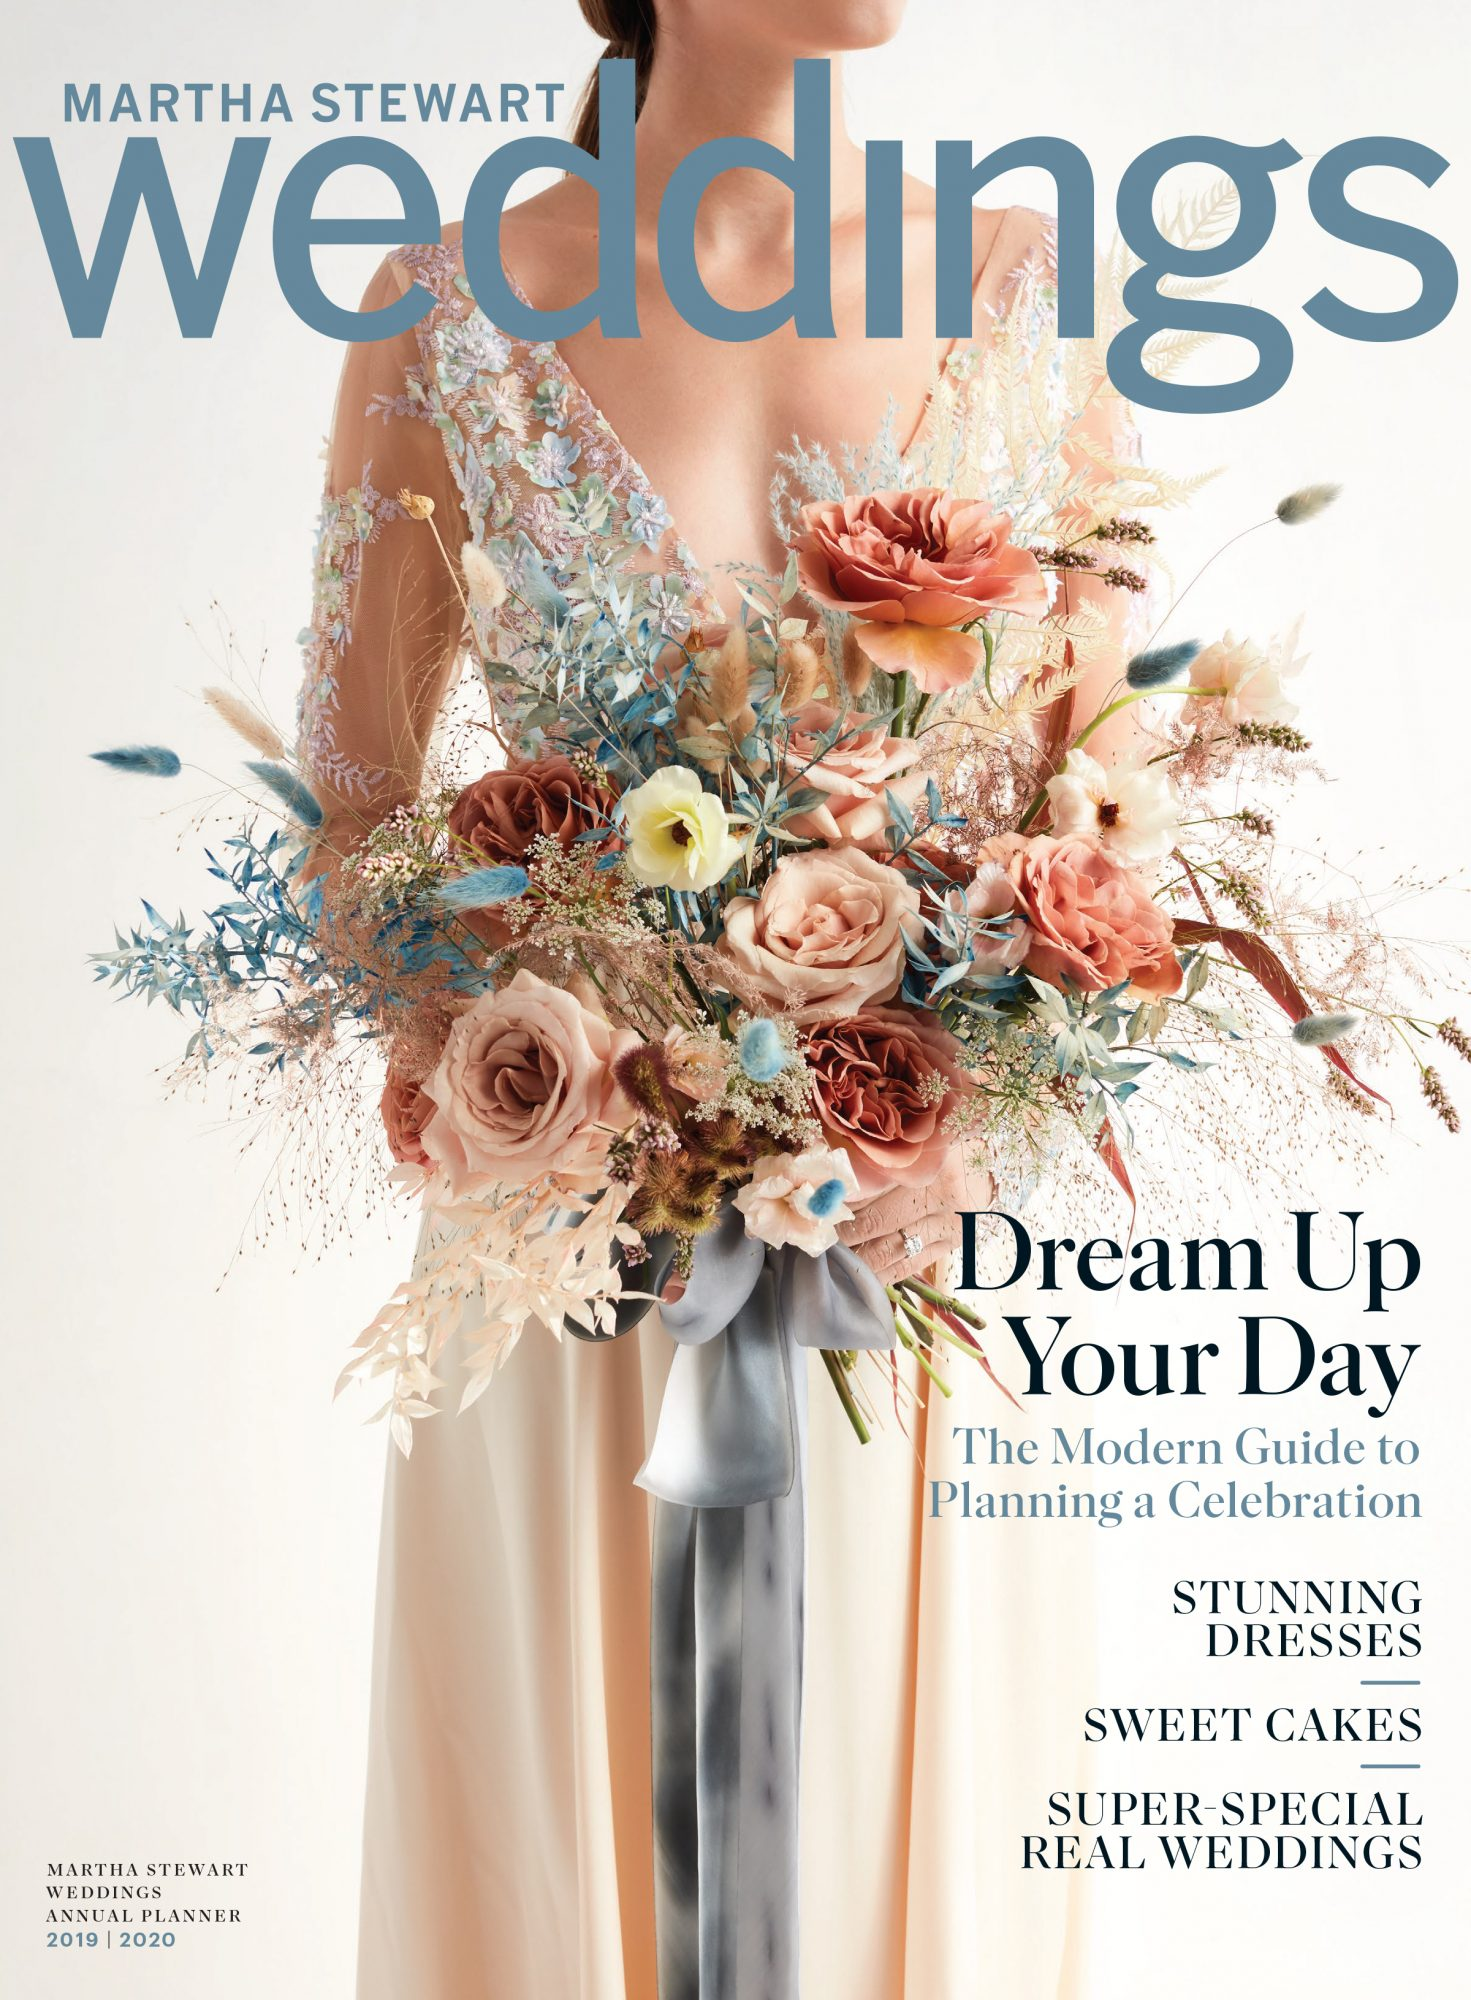 martha stewart weddings annual planner issue bride holding bouquet